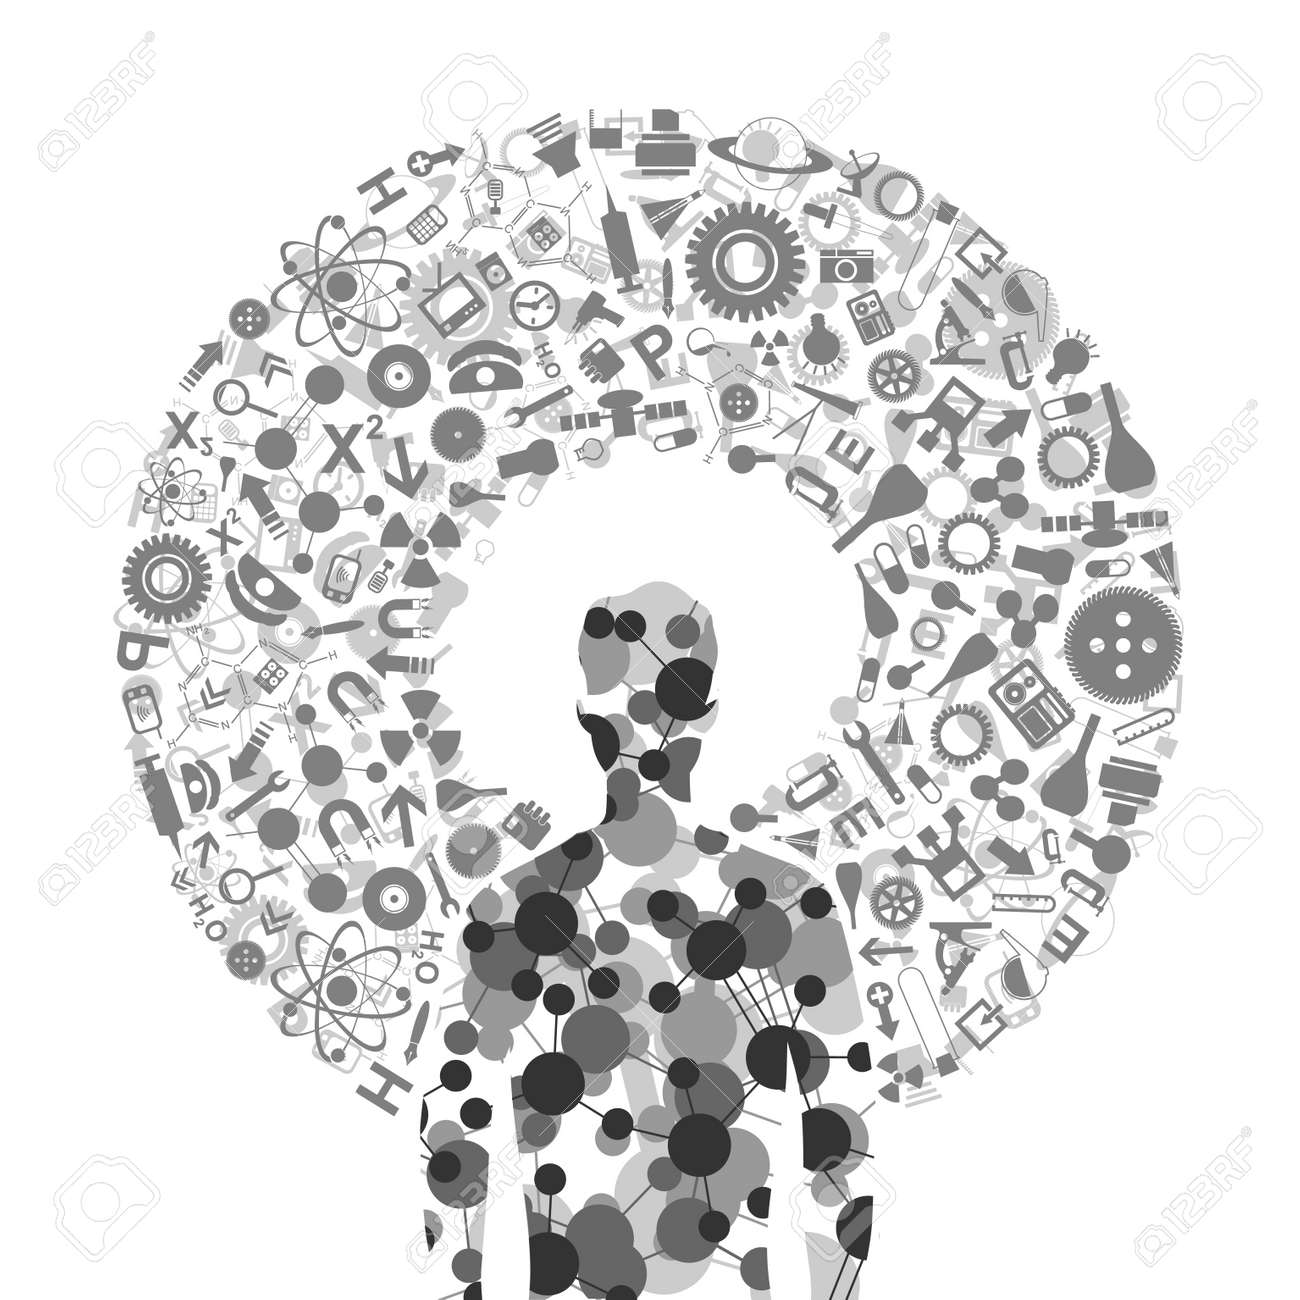 Scientific subjects round the person Stock Vector - 14004279